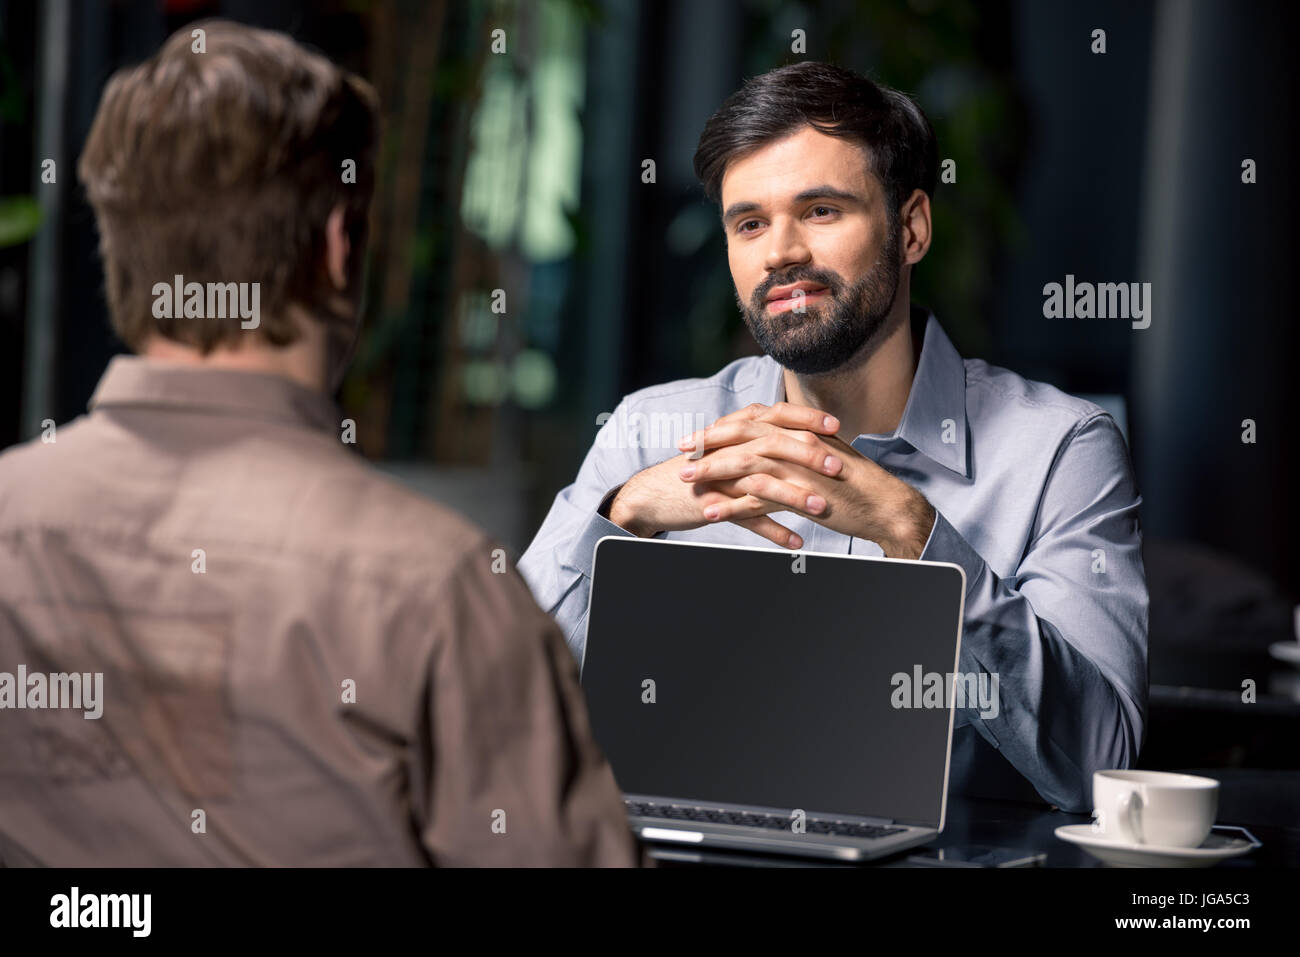 business team on meeting discussing project with laptop in cafe, business lunch concept - Stock Image